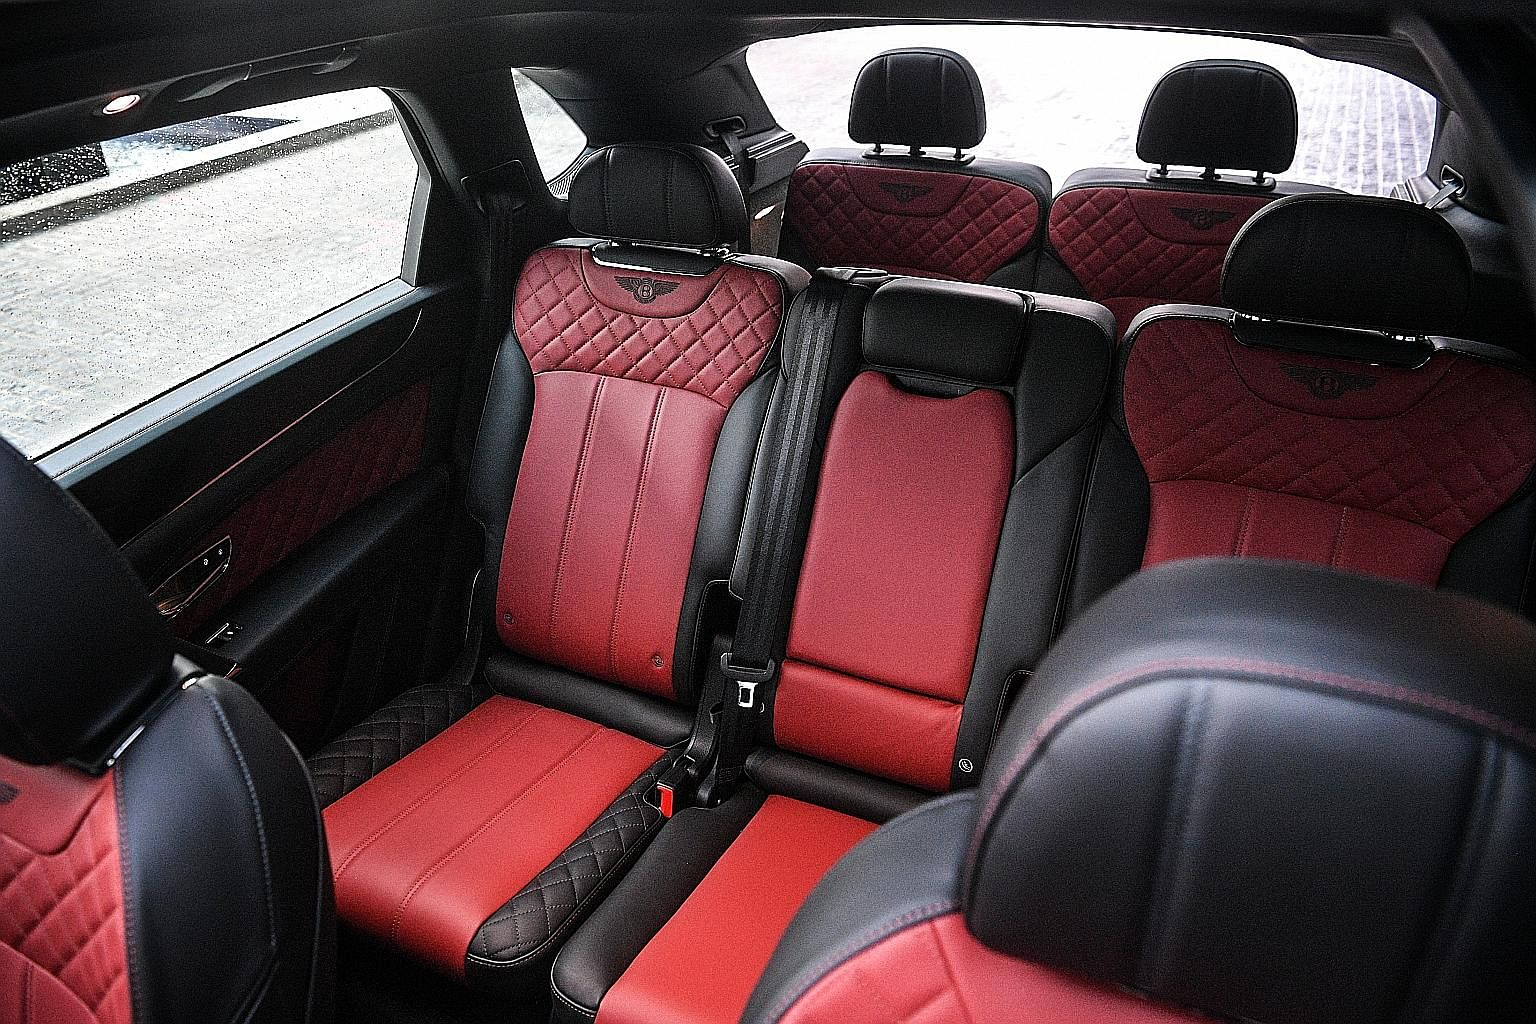 The Seven Seater Bentley Bentayga Diesel Is Fit For A Sultan Motoring News Top Stories The Straits Times